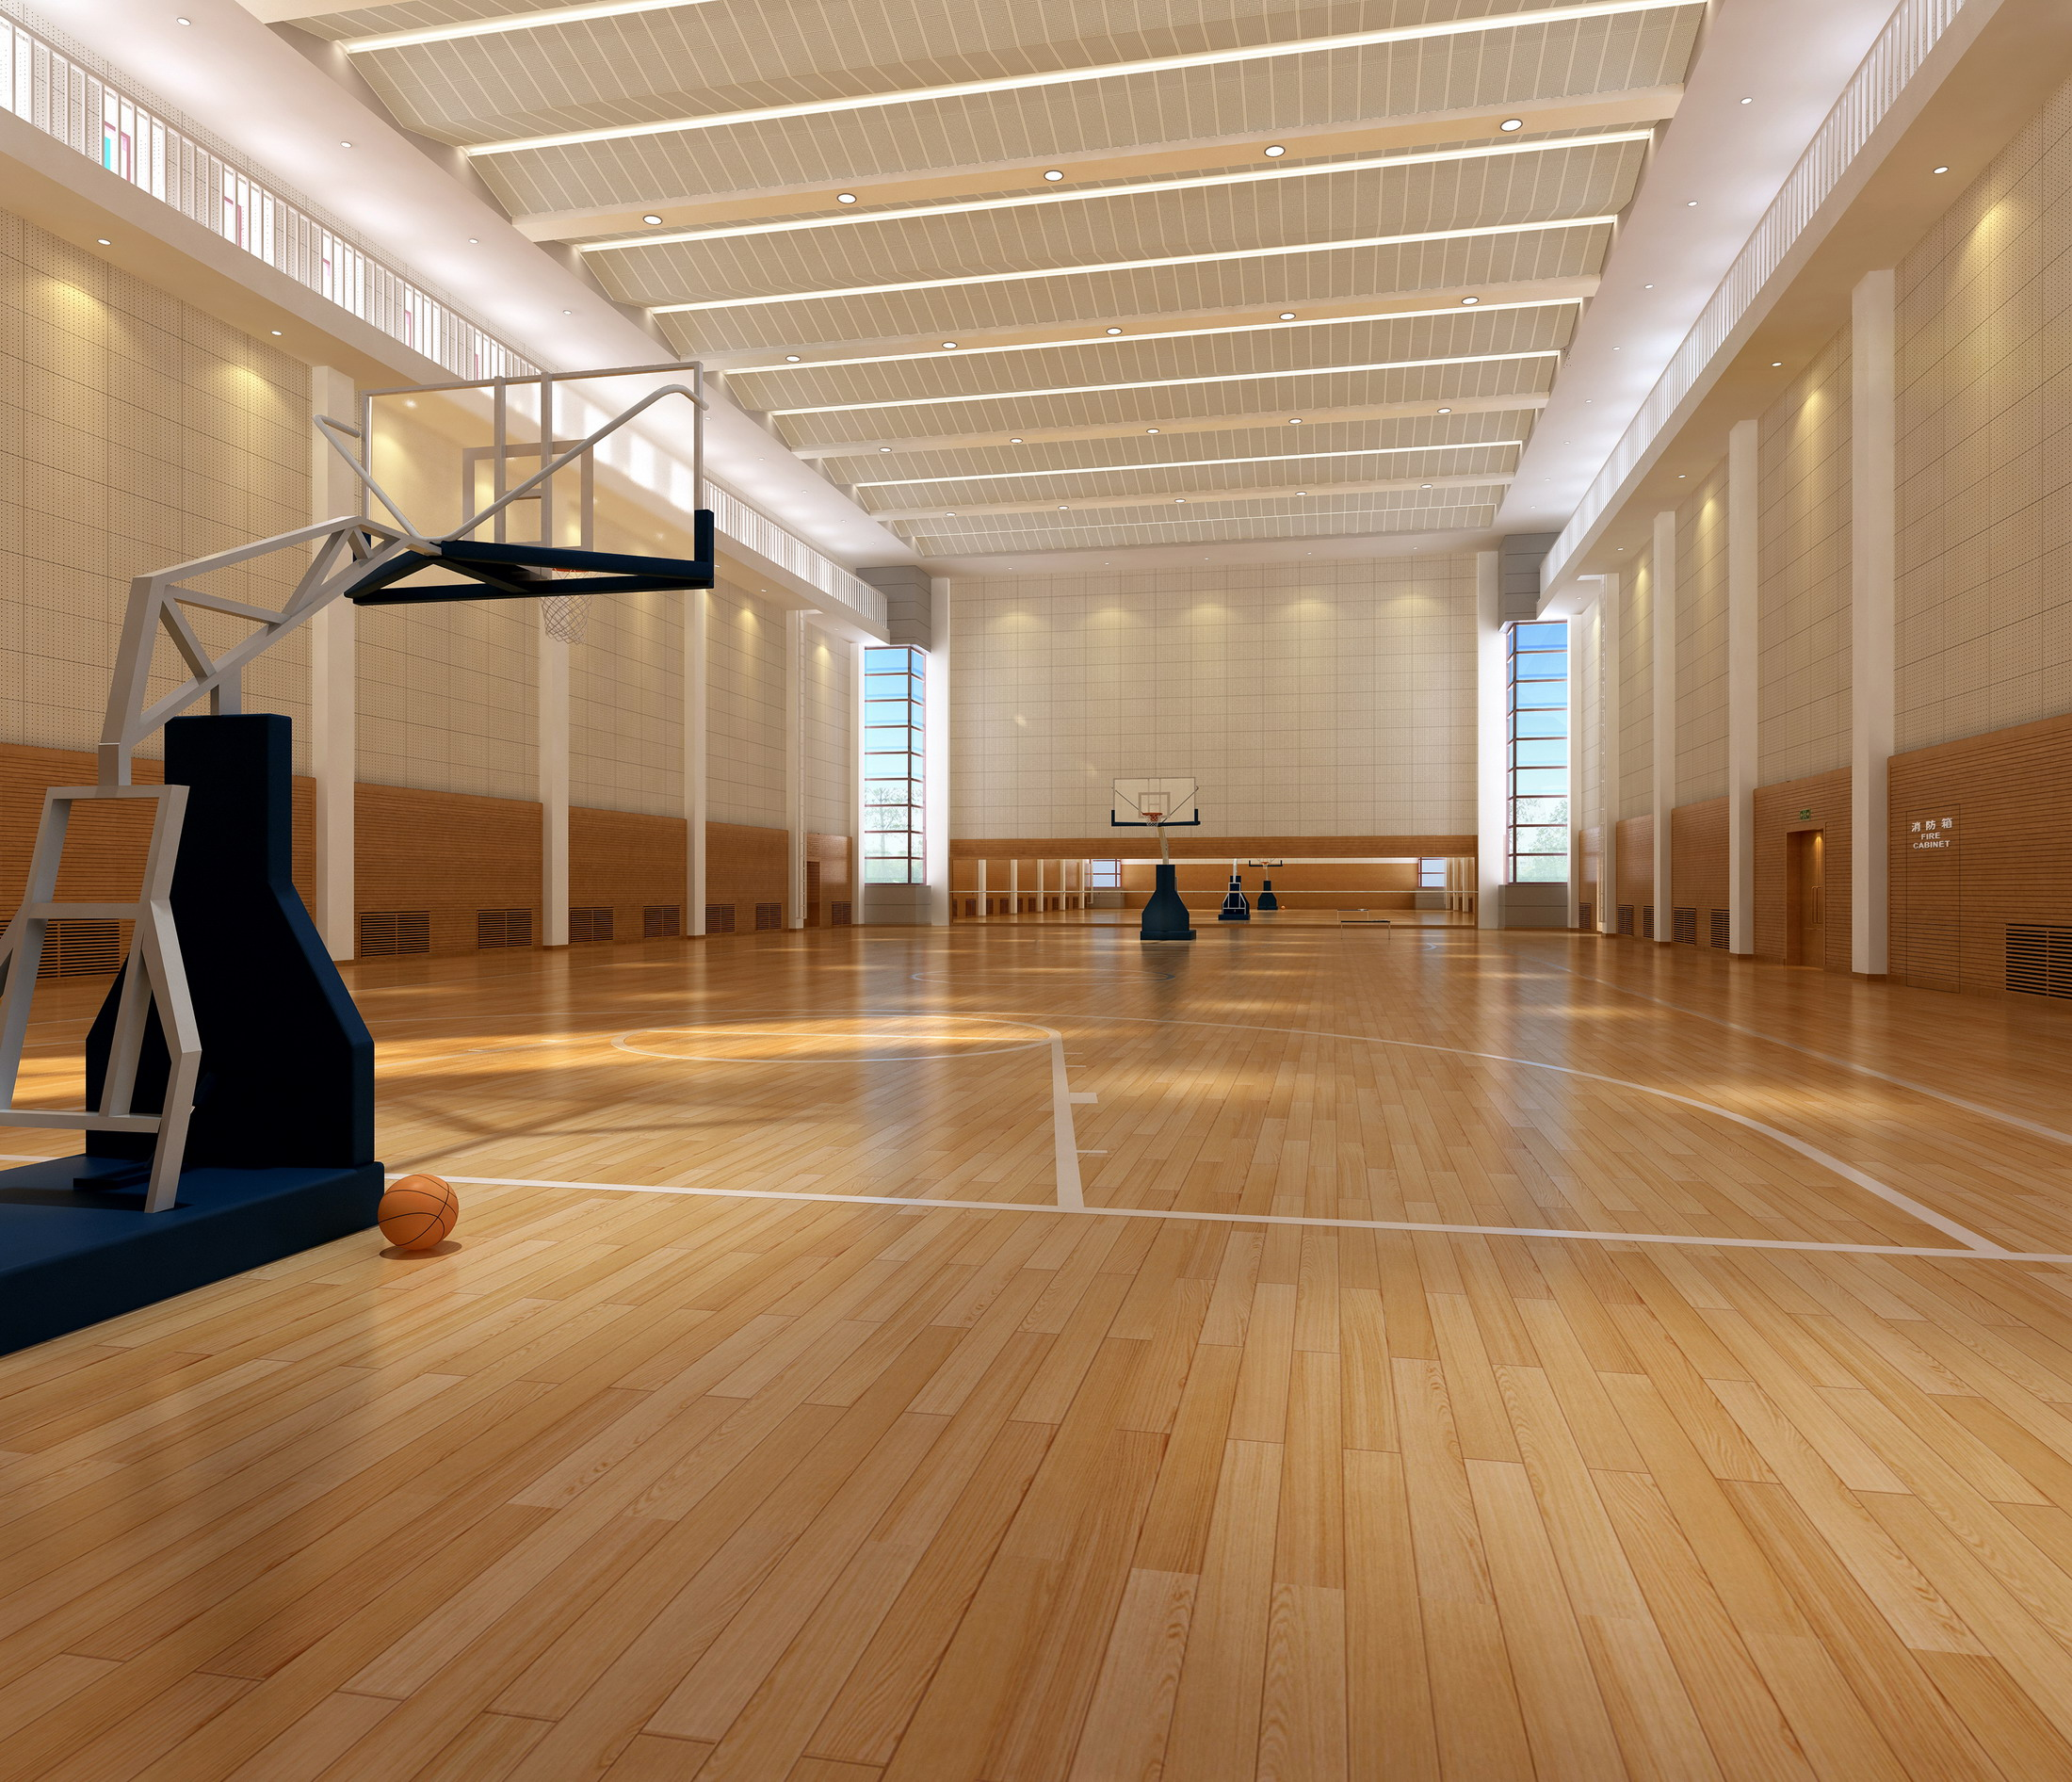 basketball gymnasium arena 002 3d model max 138832